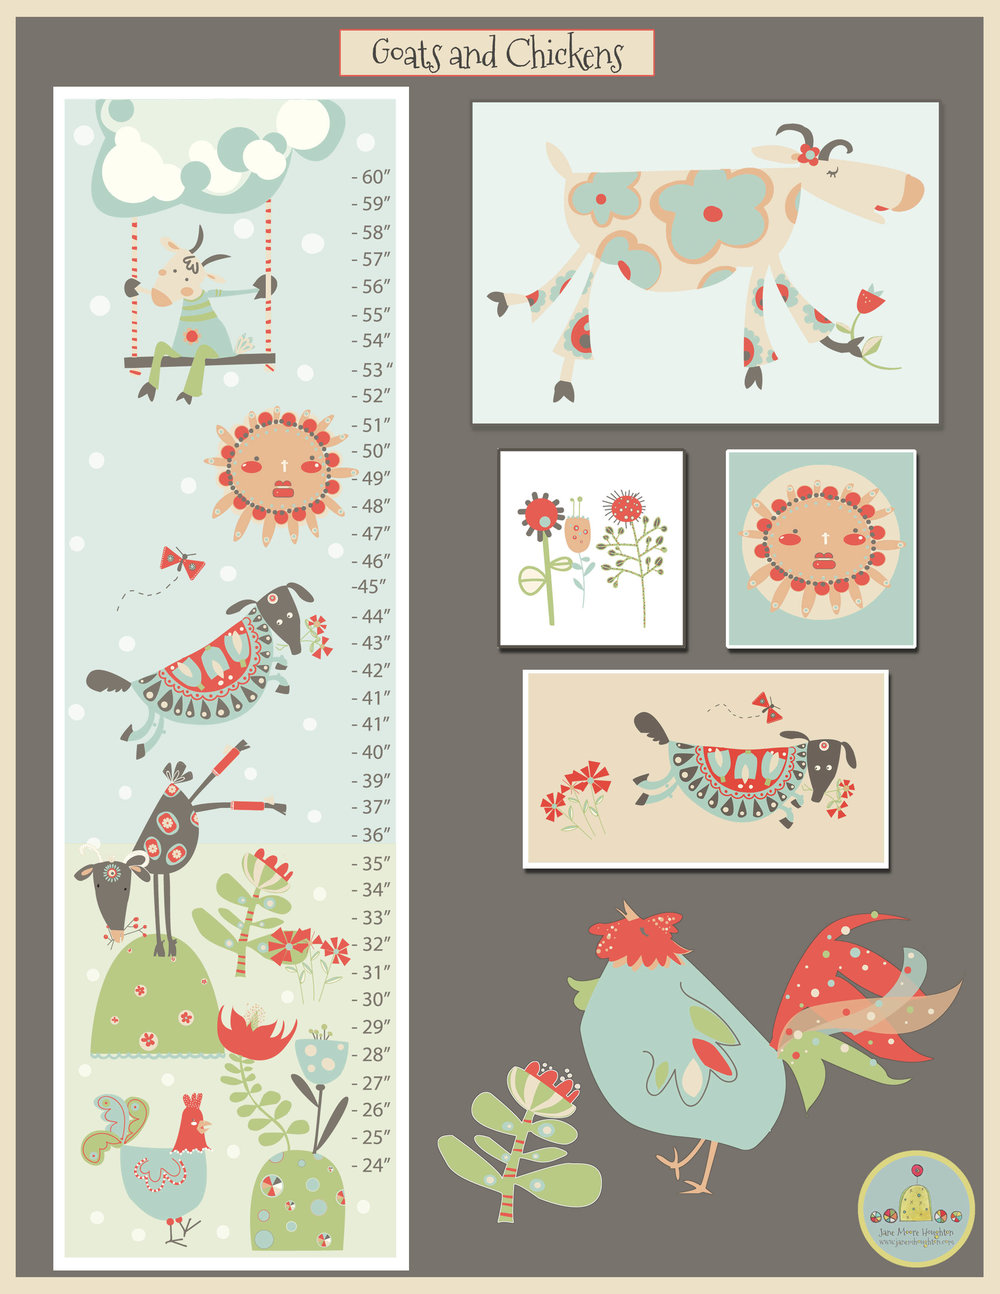 Theme: Barnyard characters on a growth chart